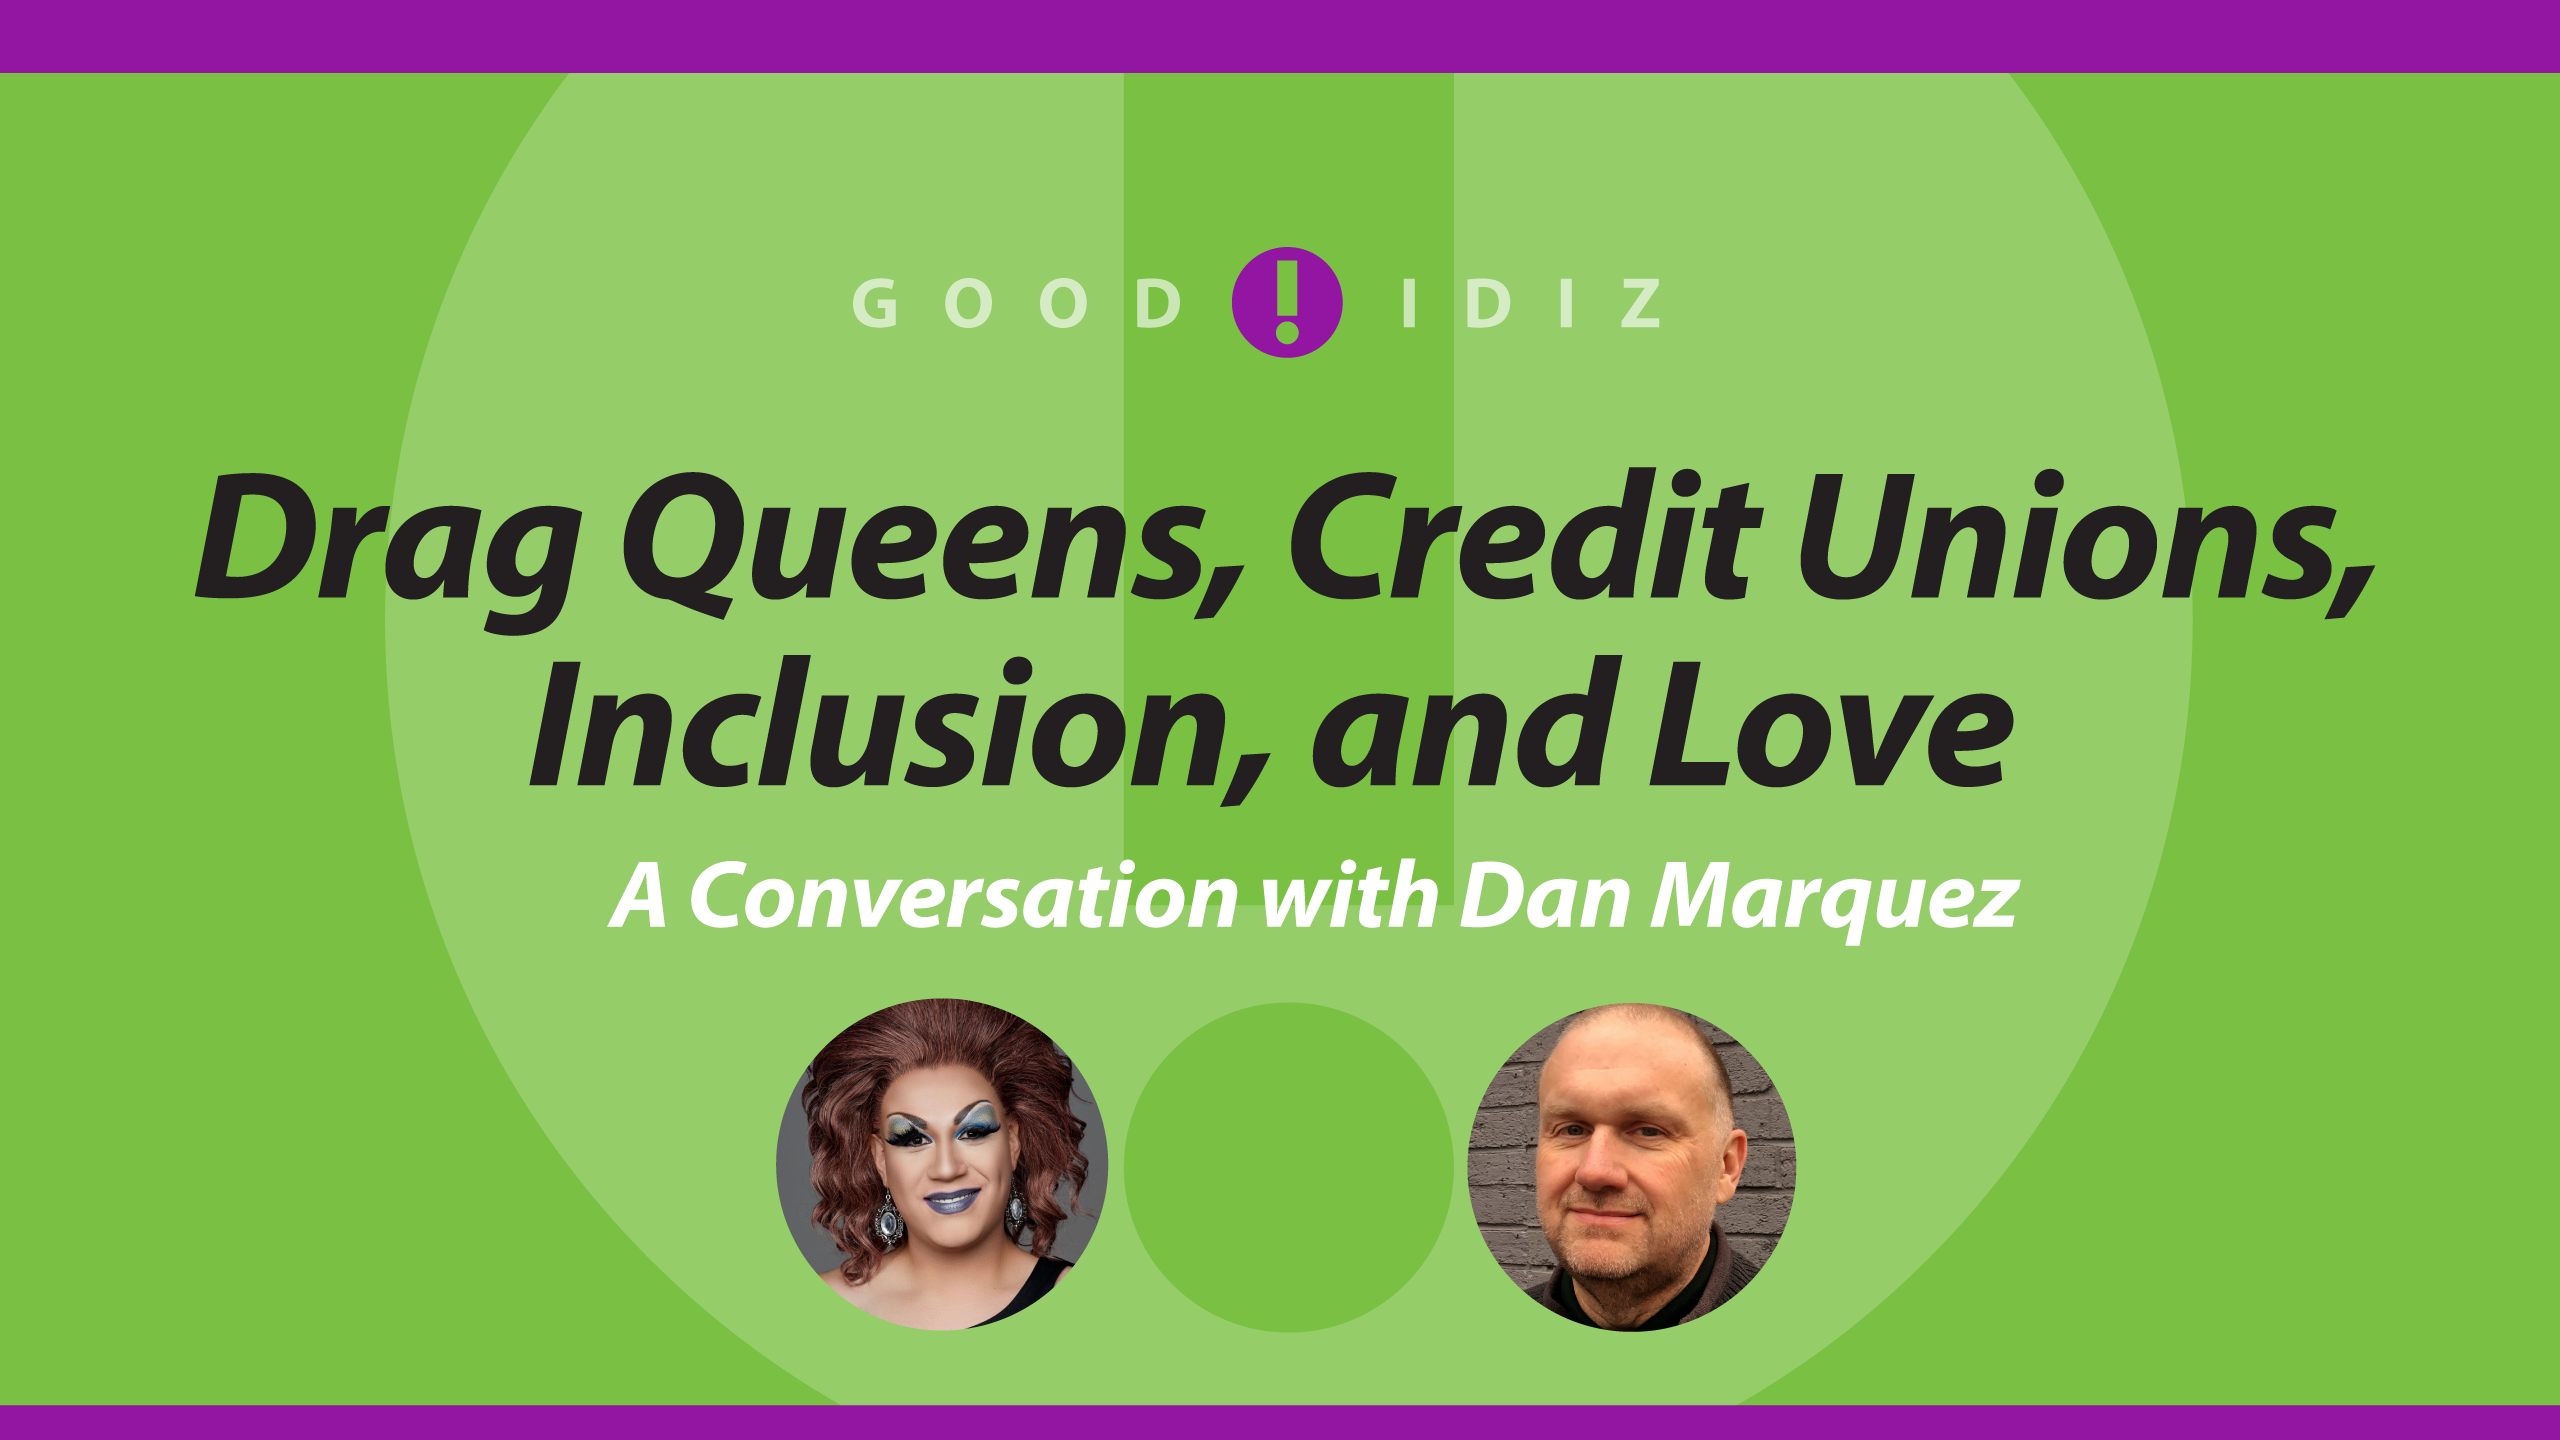 Drag Queens, Credit Unions, Inclusion, and Love